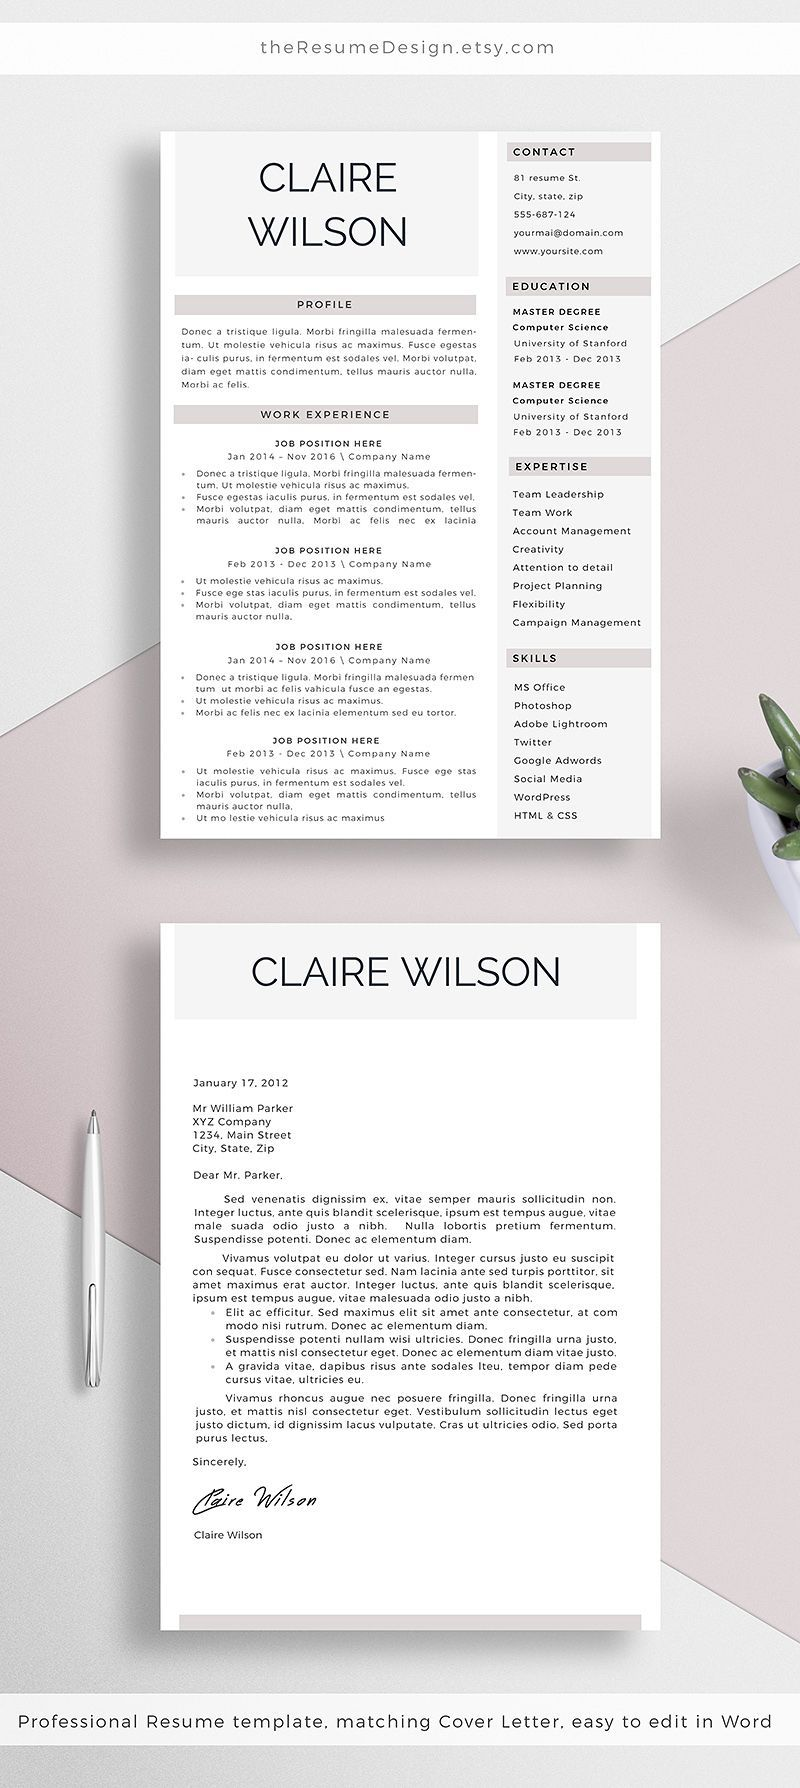 Stand Out From The Crowd With Our Simple And Clean Resume Template More Resume Template Professional Resume Template Cover Letter For Resume